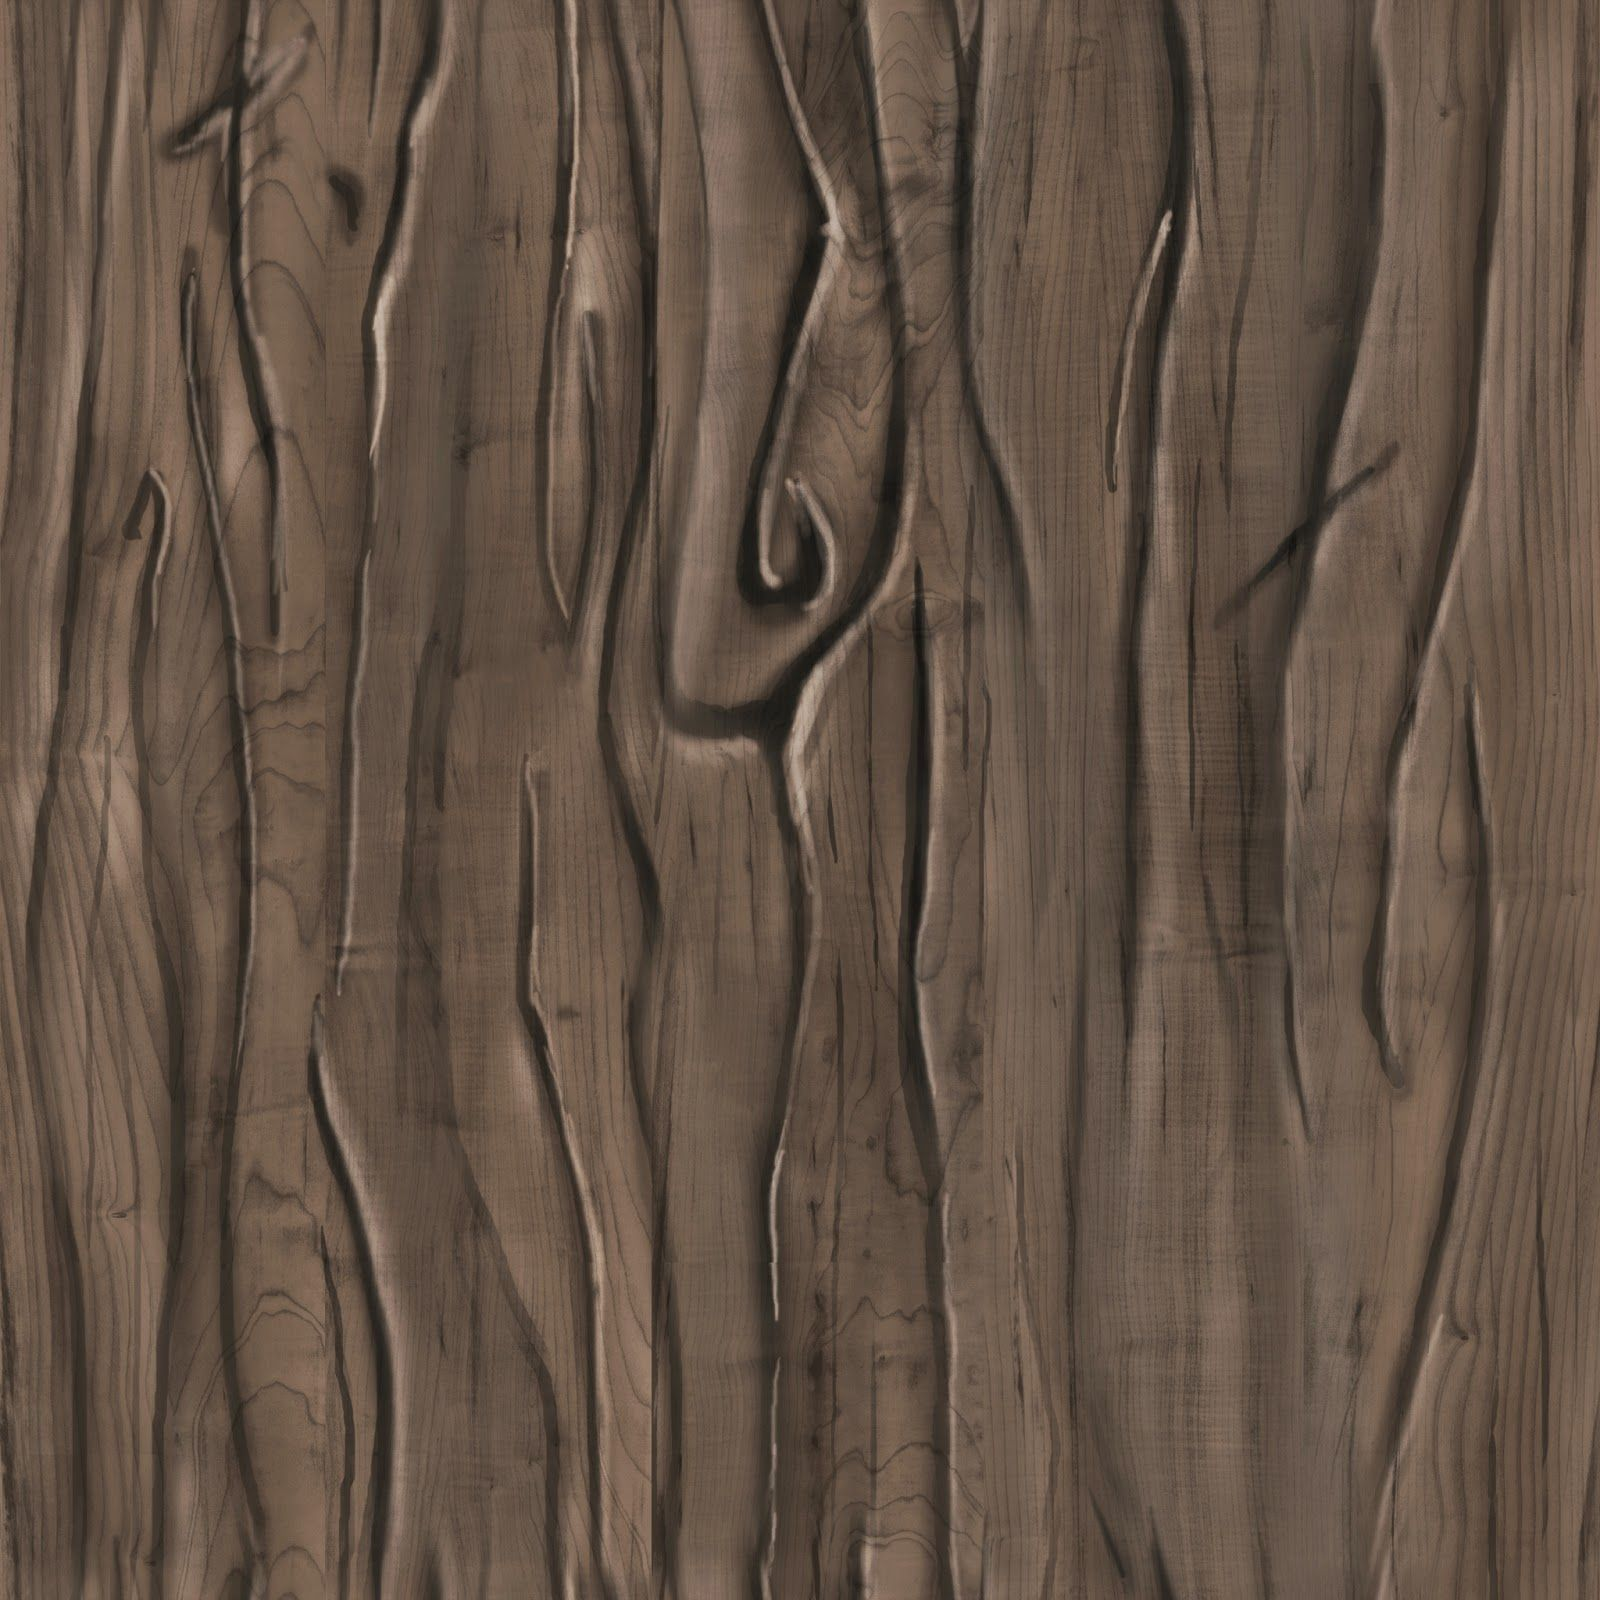 Jesse 39 S Art Sauce Hand Painted Seamless Wood Texture Game Texture Reference Pinterest